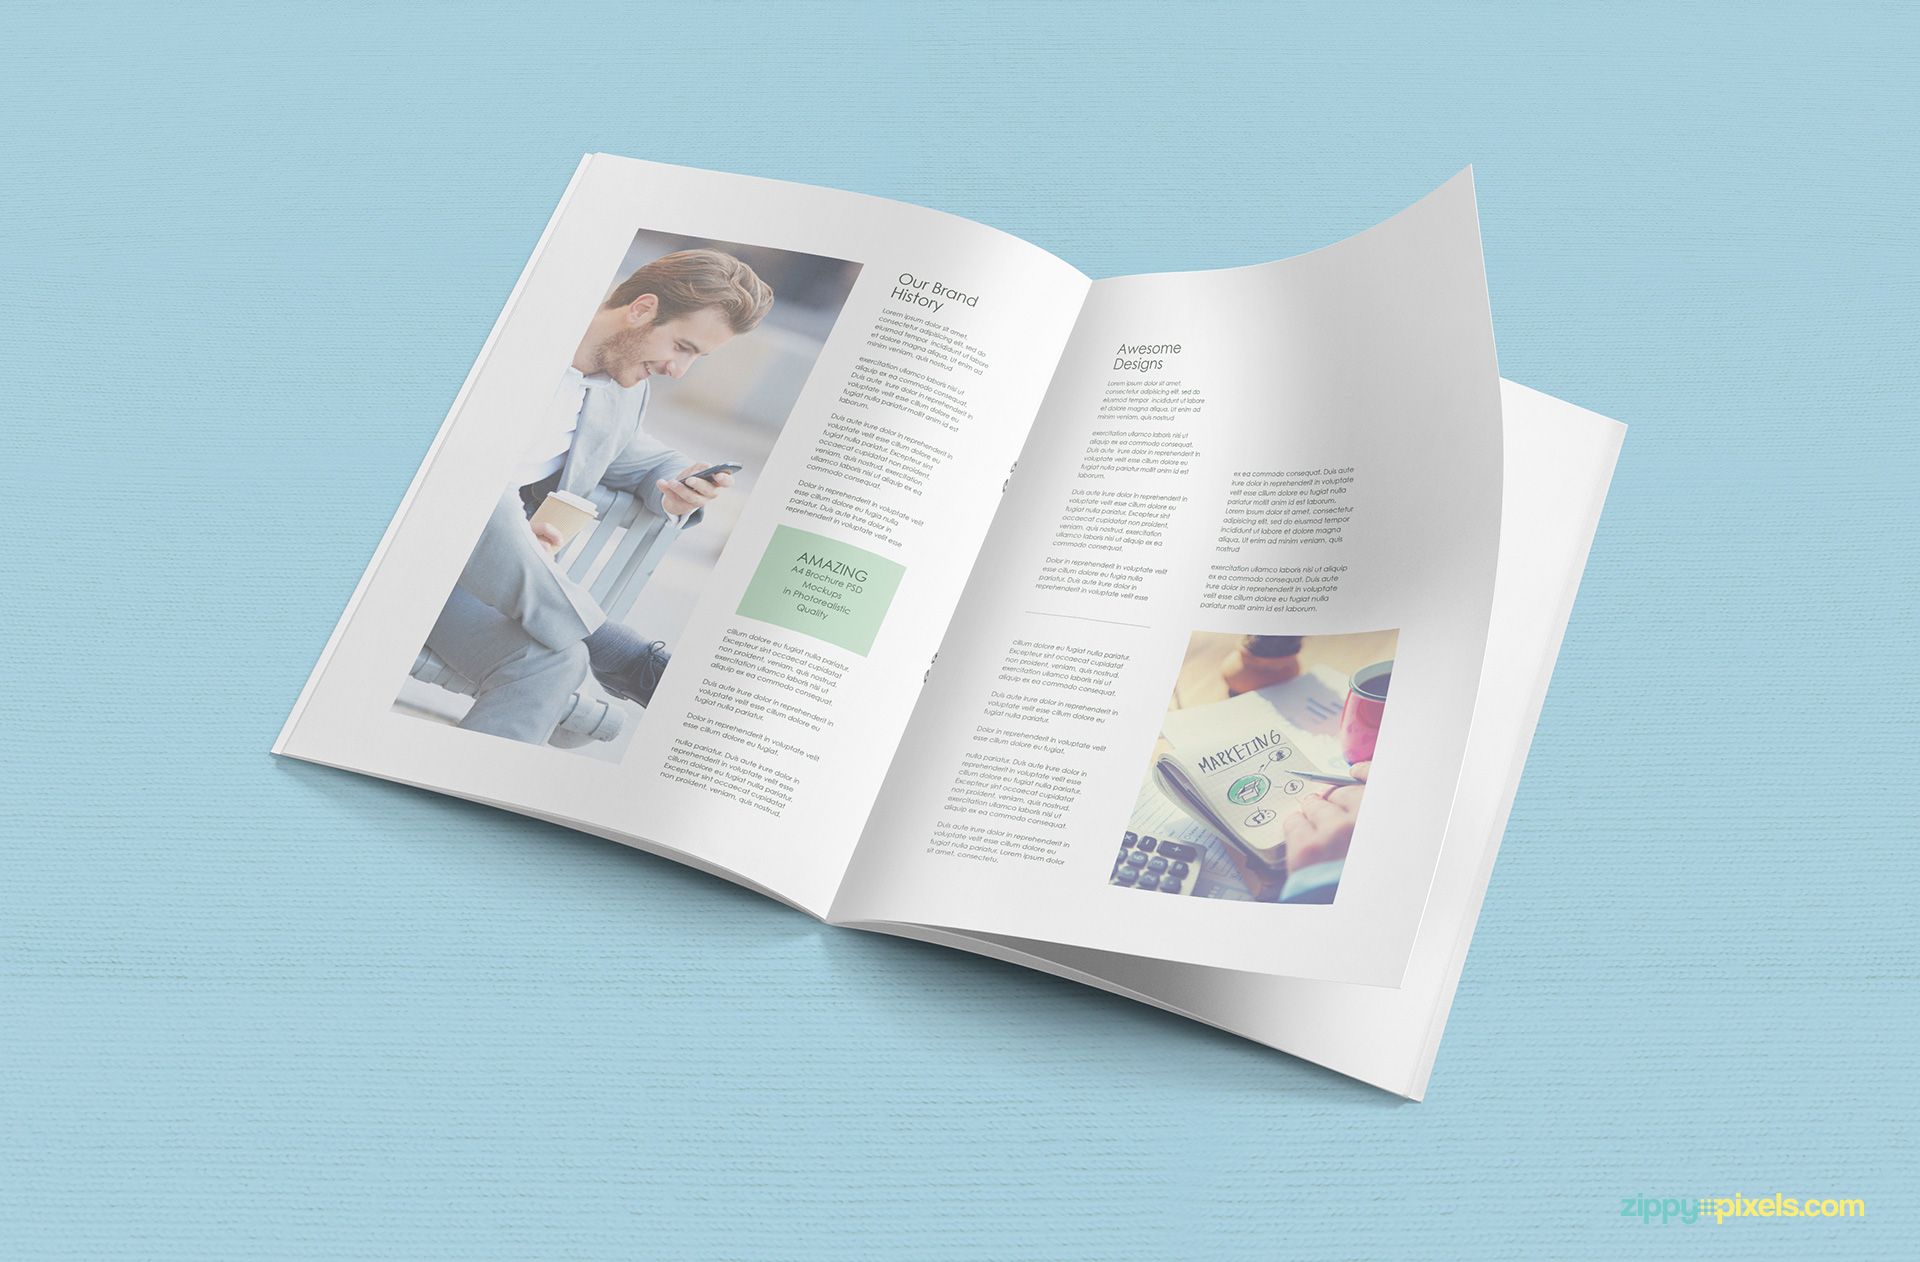 Free A4 Brochure Mockup   ZippyPixels     a4 brochure mockup page turning in air